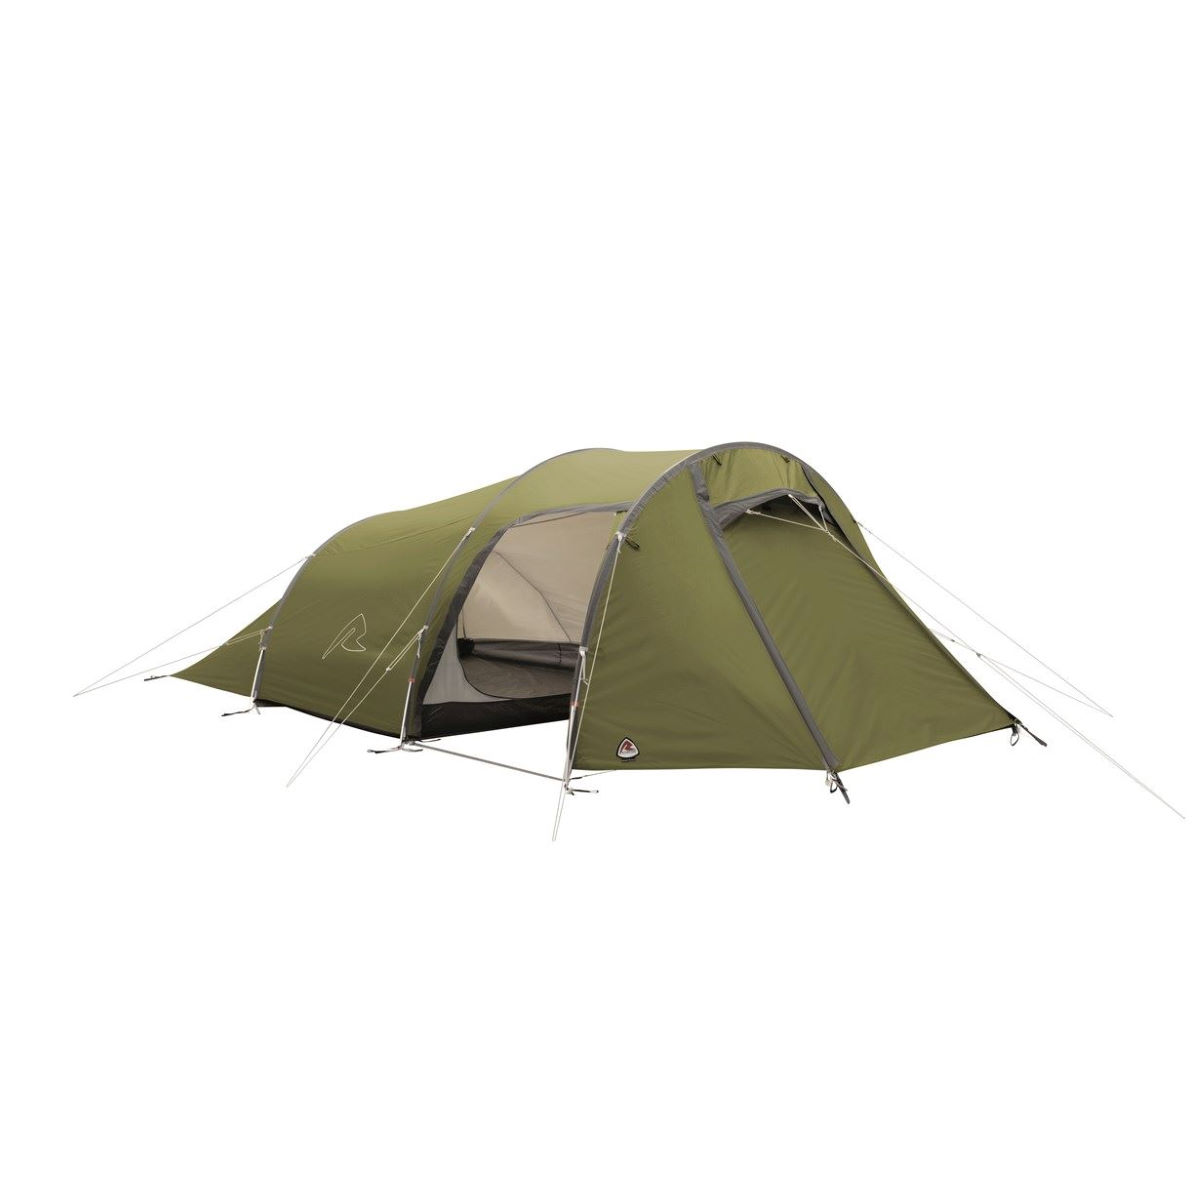 Robens Robens Voyager Versa 4Person Tent   Tents